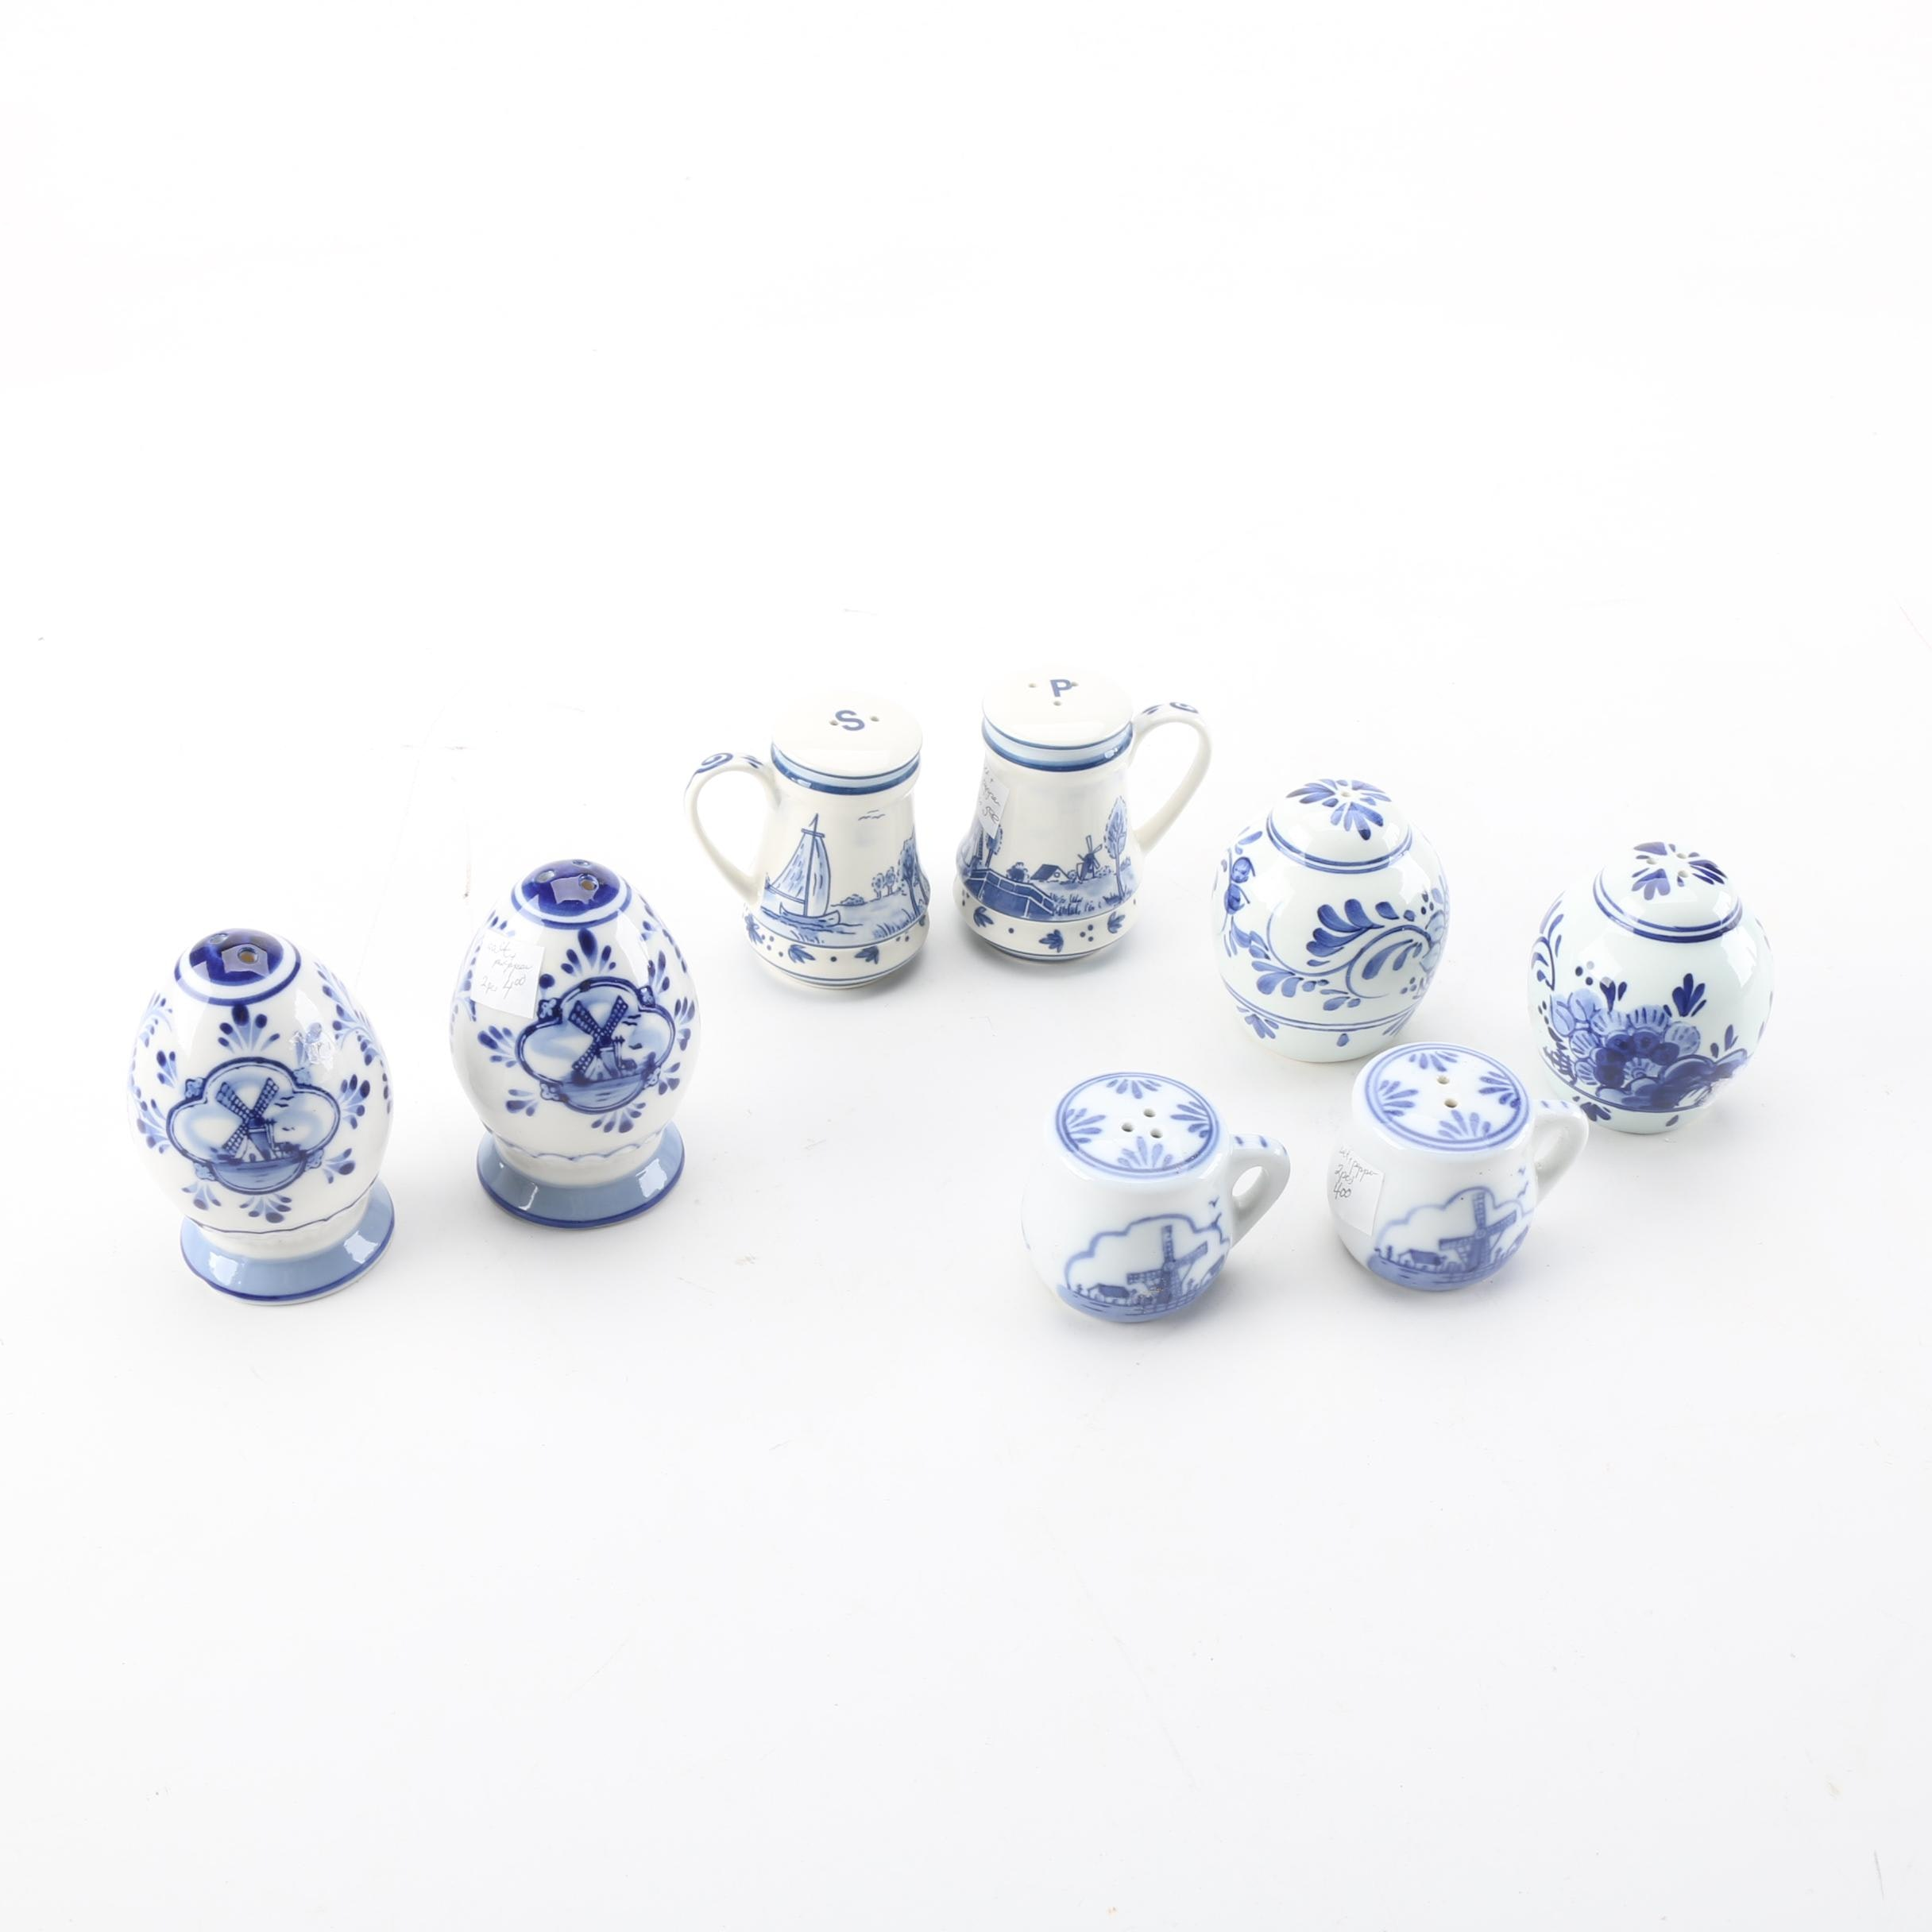 Vintage Blue and White Porcelain Condiment Shakers